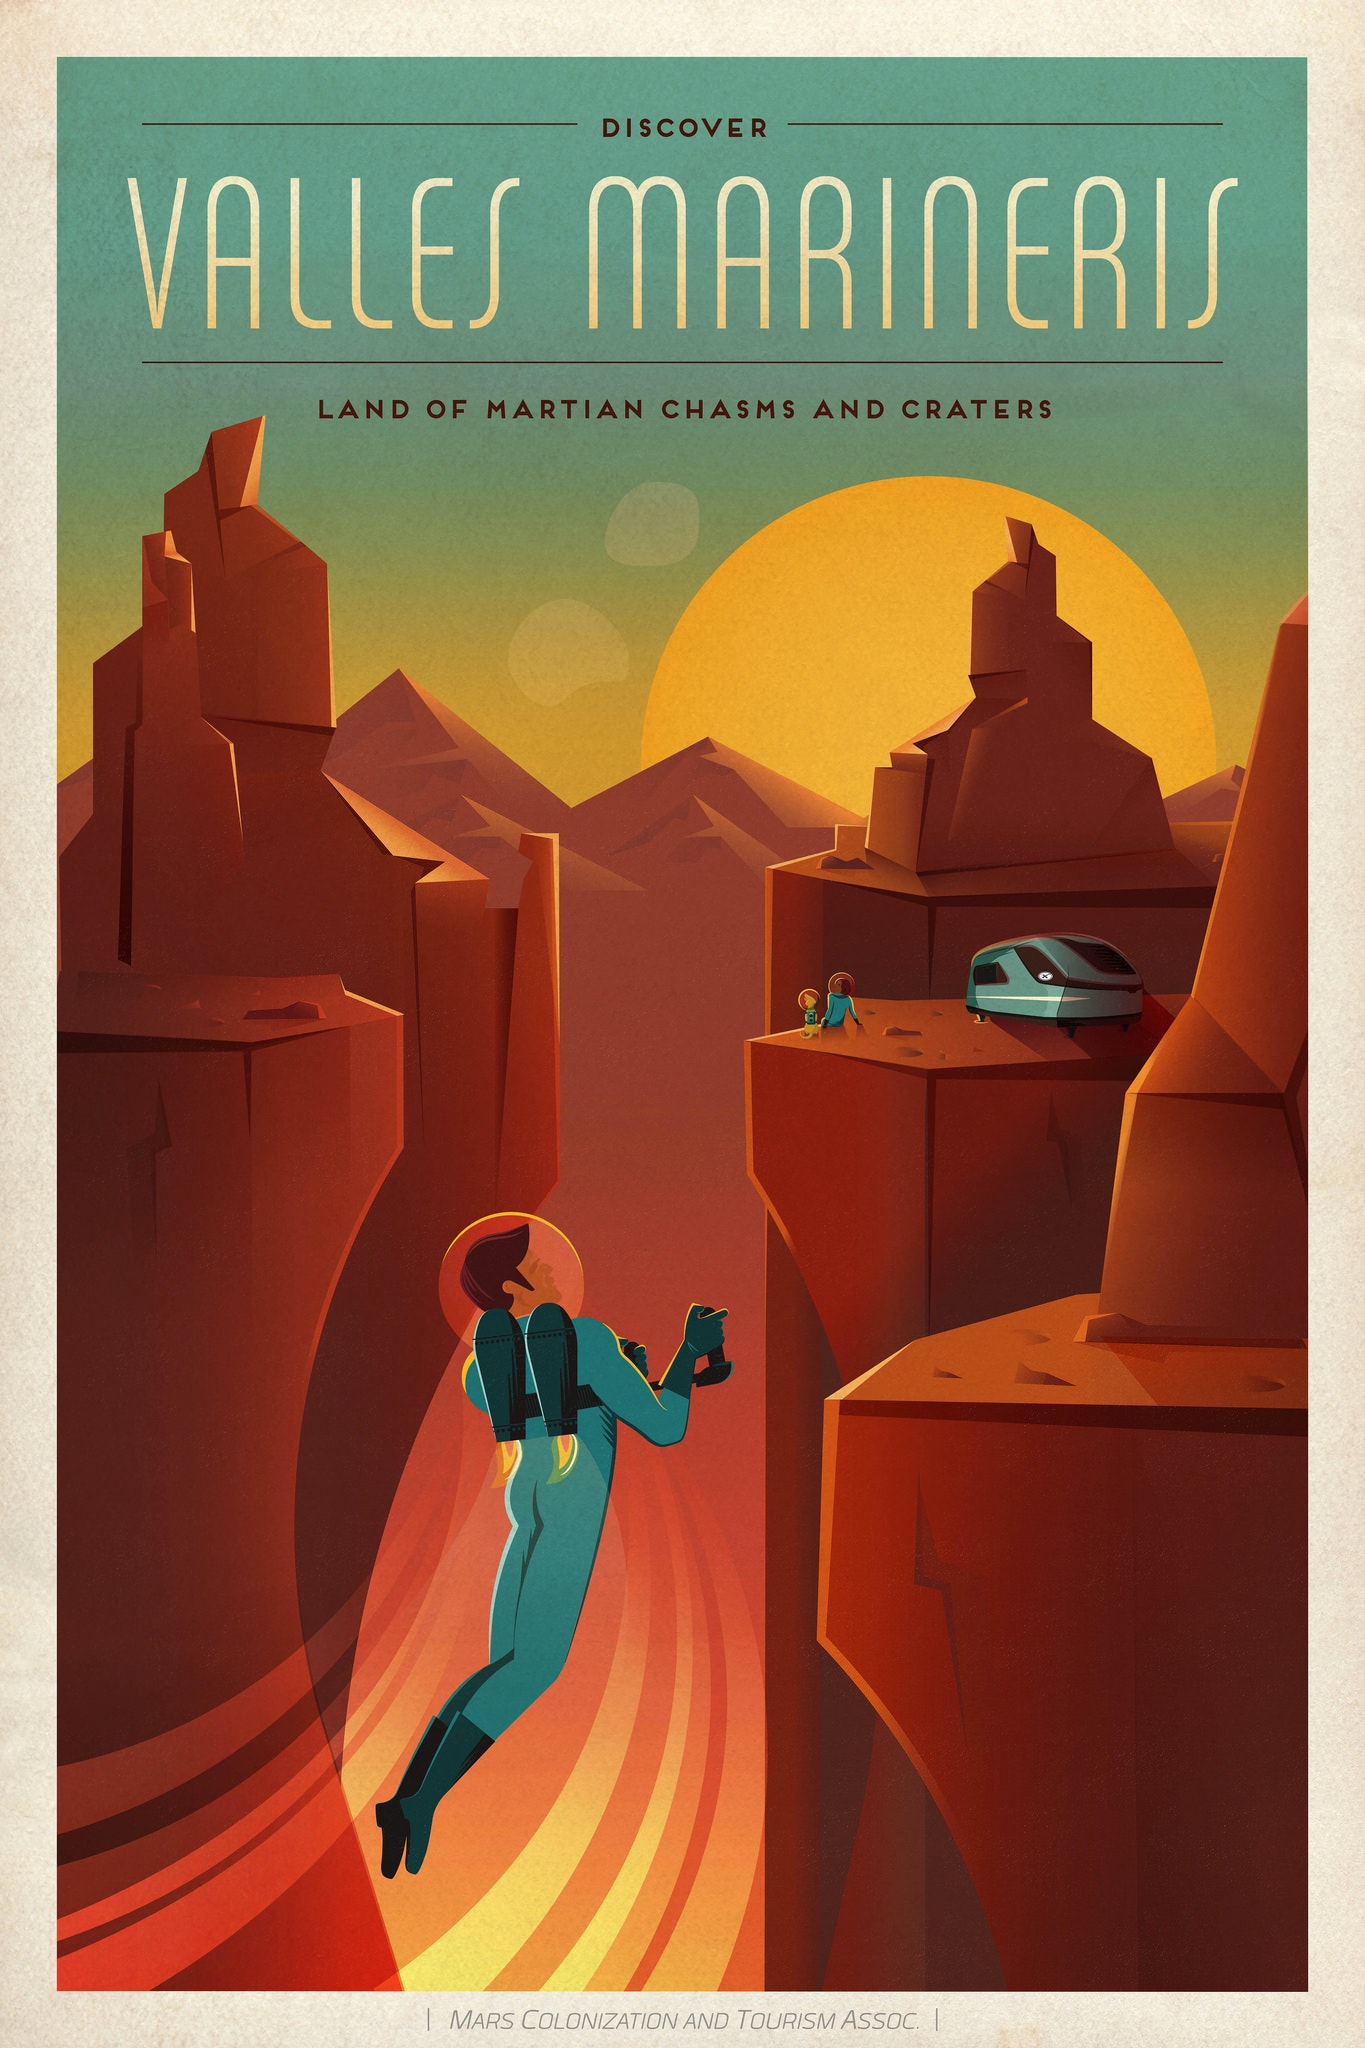 Colonize Mars poster from SpaceX